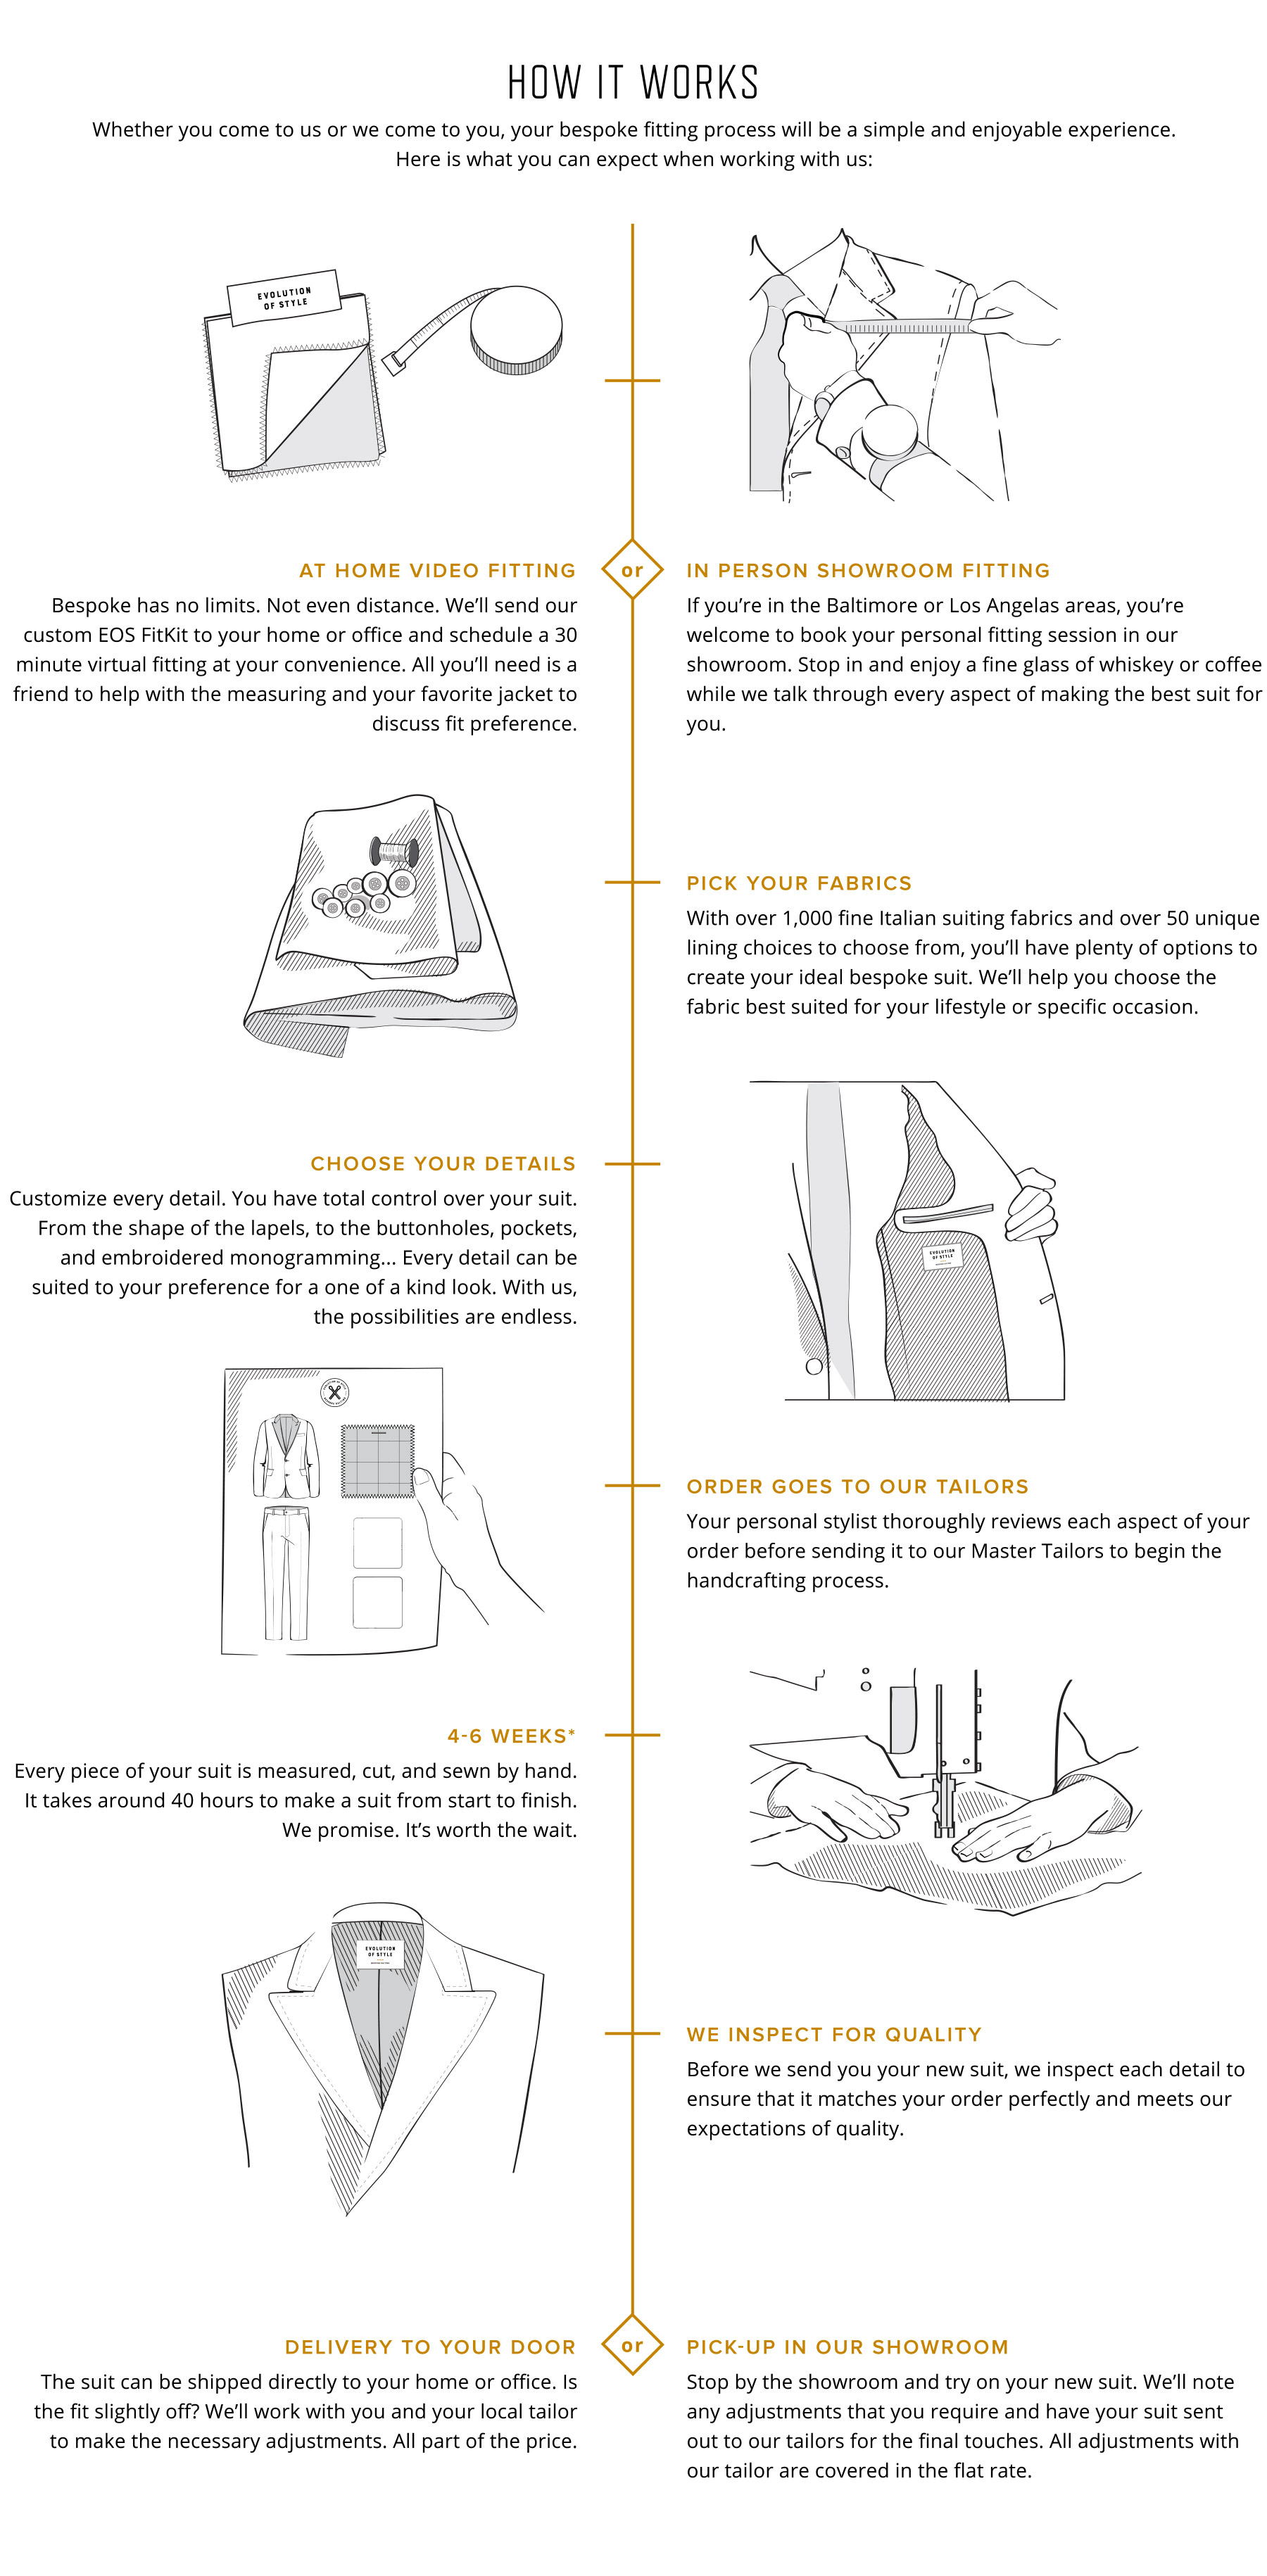 How it works, custom suit process timeline